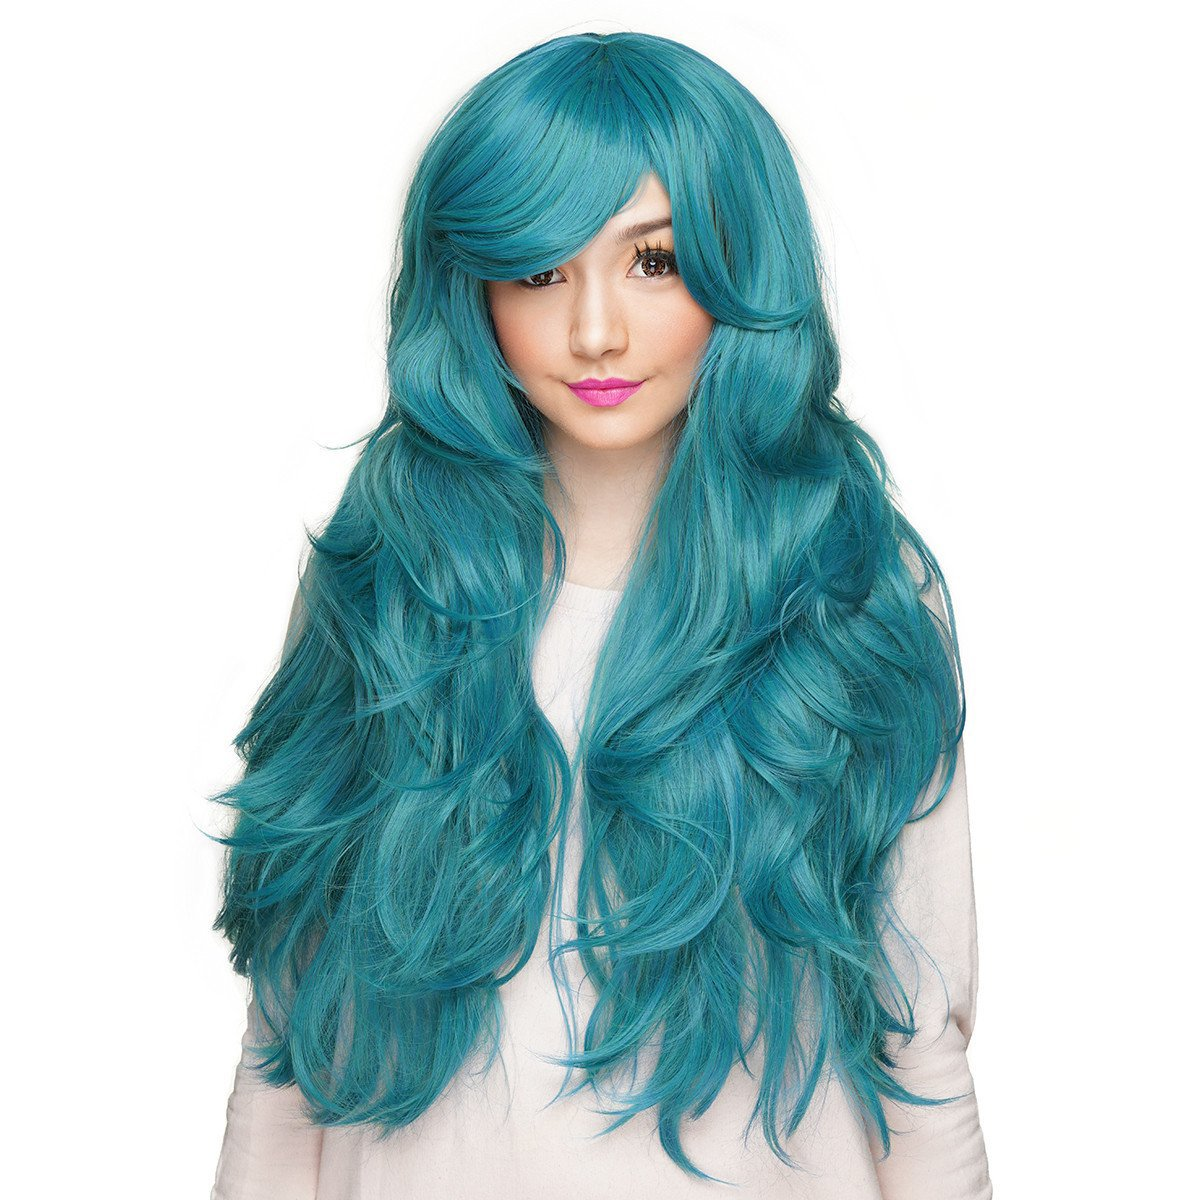 Gothic Lolita Wigs® Rockstar Wigs Hologram 32 - Turquoise Mix - 00631